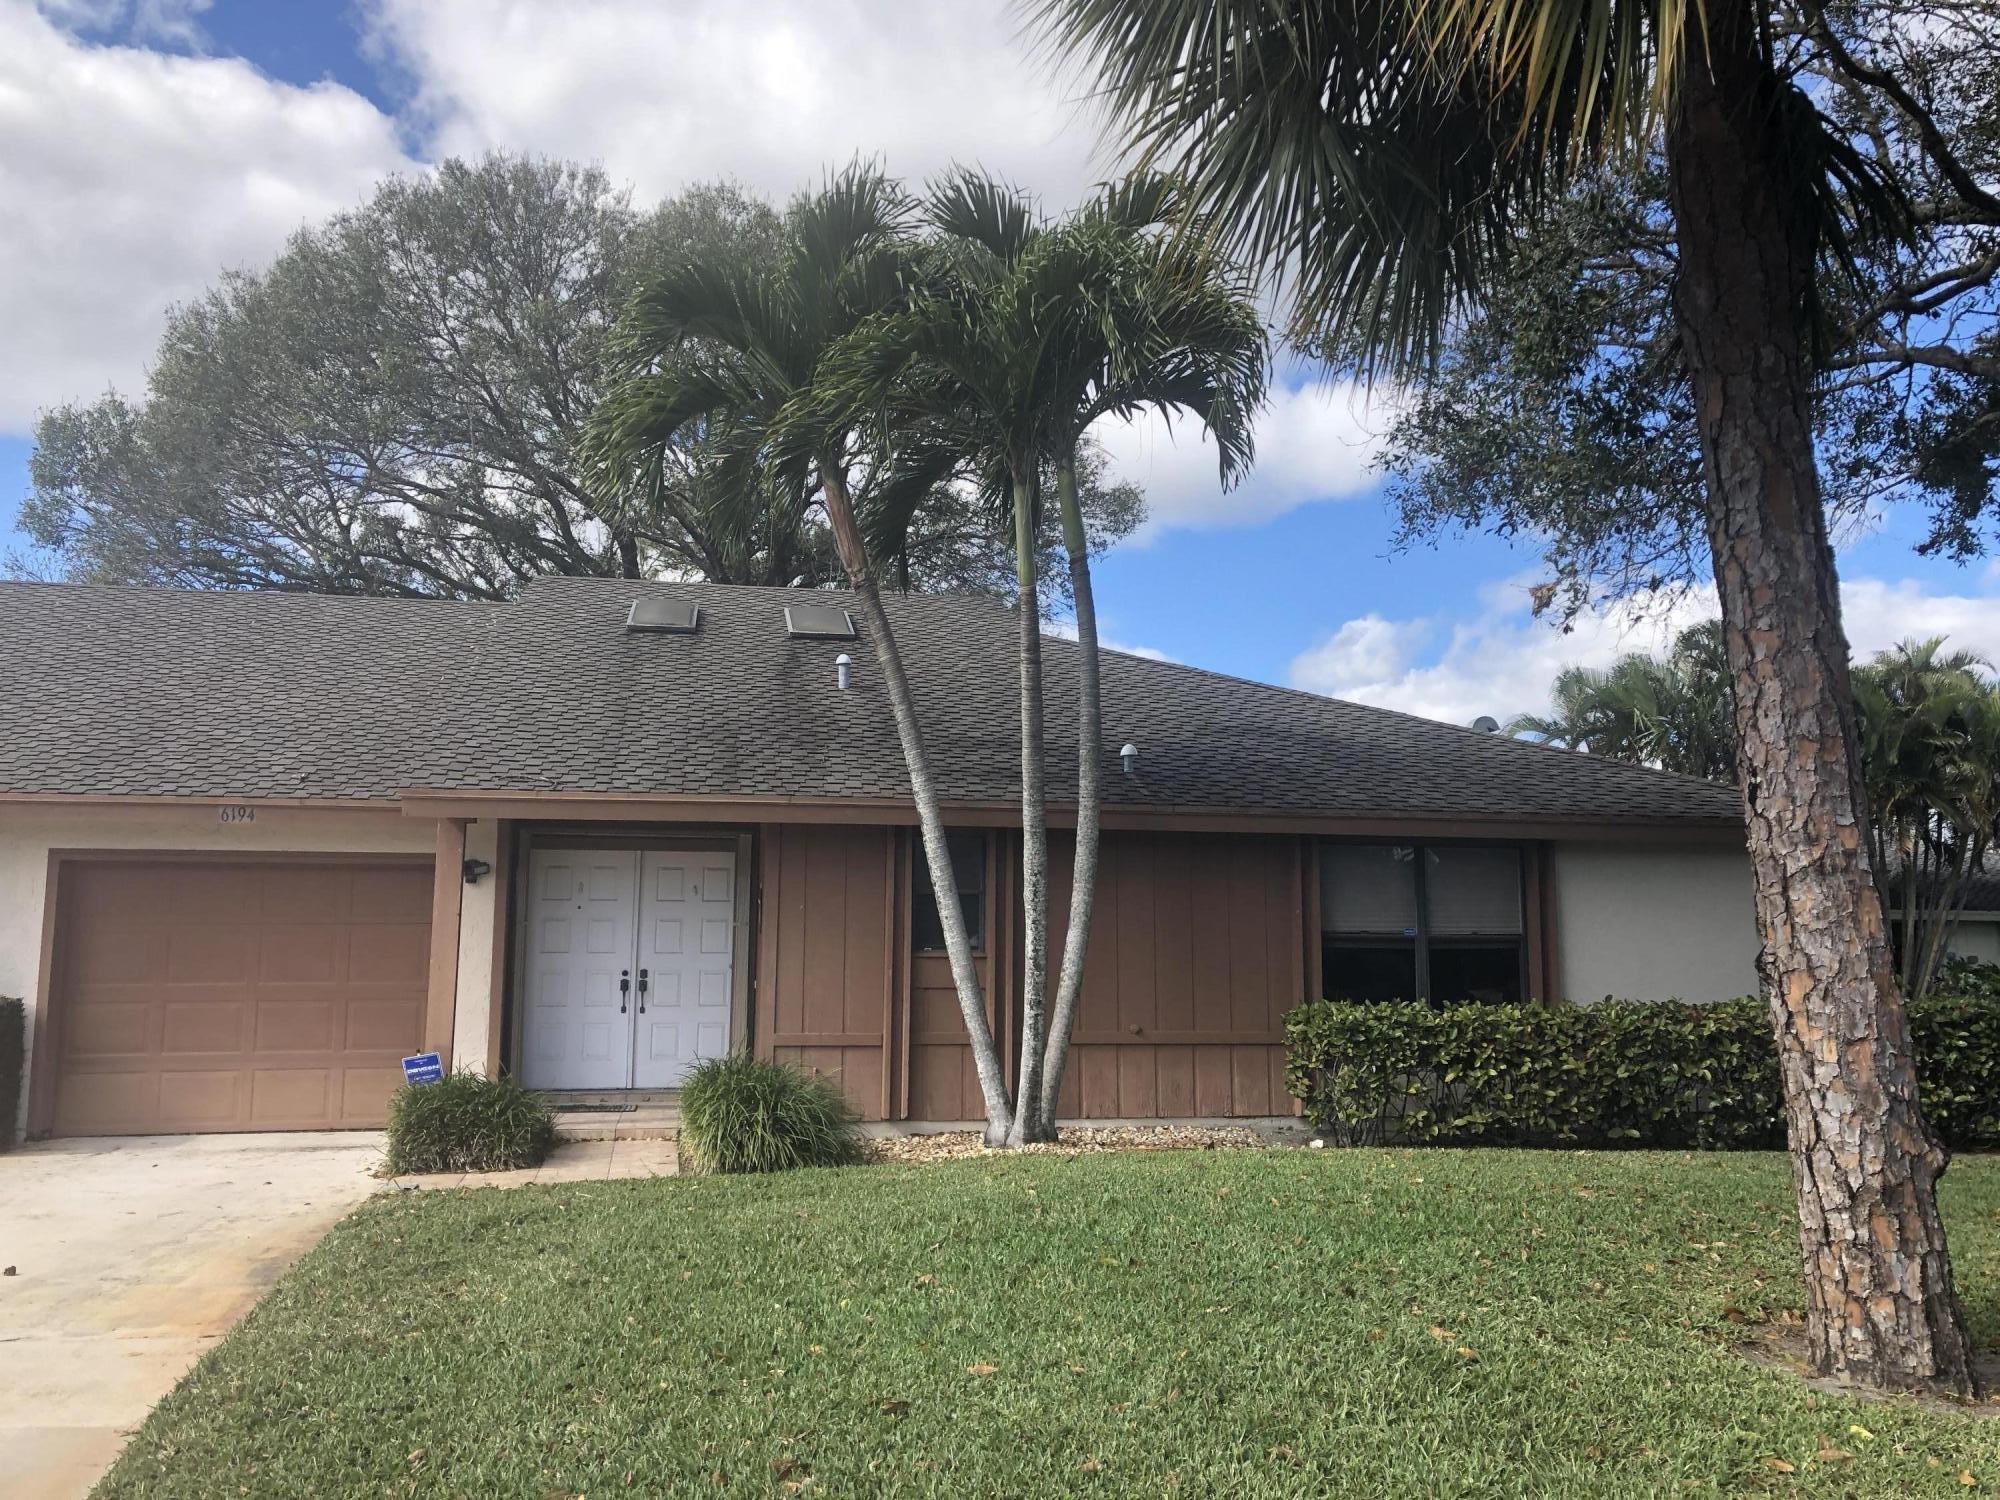 6194 Brandon Street, Palm Beach Gardens, Florida 33418, 2 Bedrooms Bedrooms, ,2 BathroomsBathrooms,A,Villa,Brandon,RX-10494447